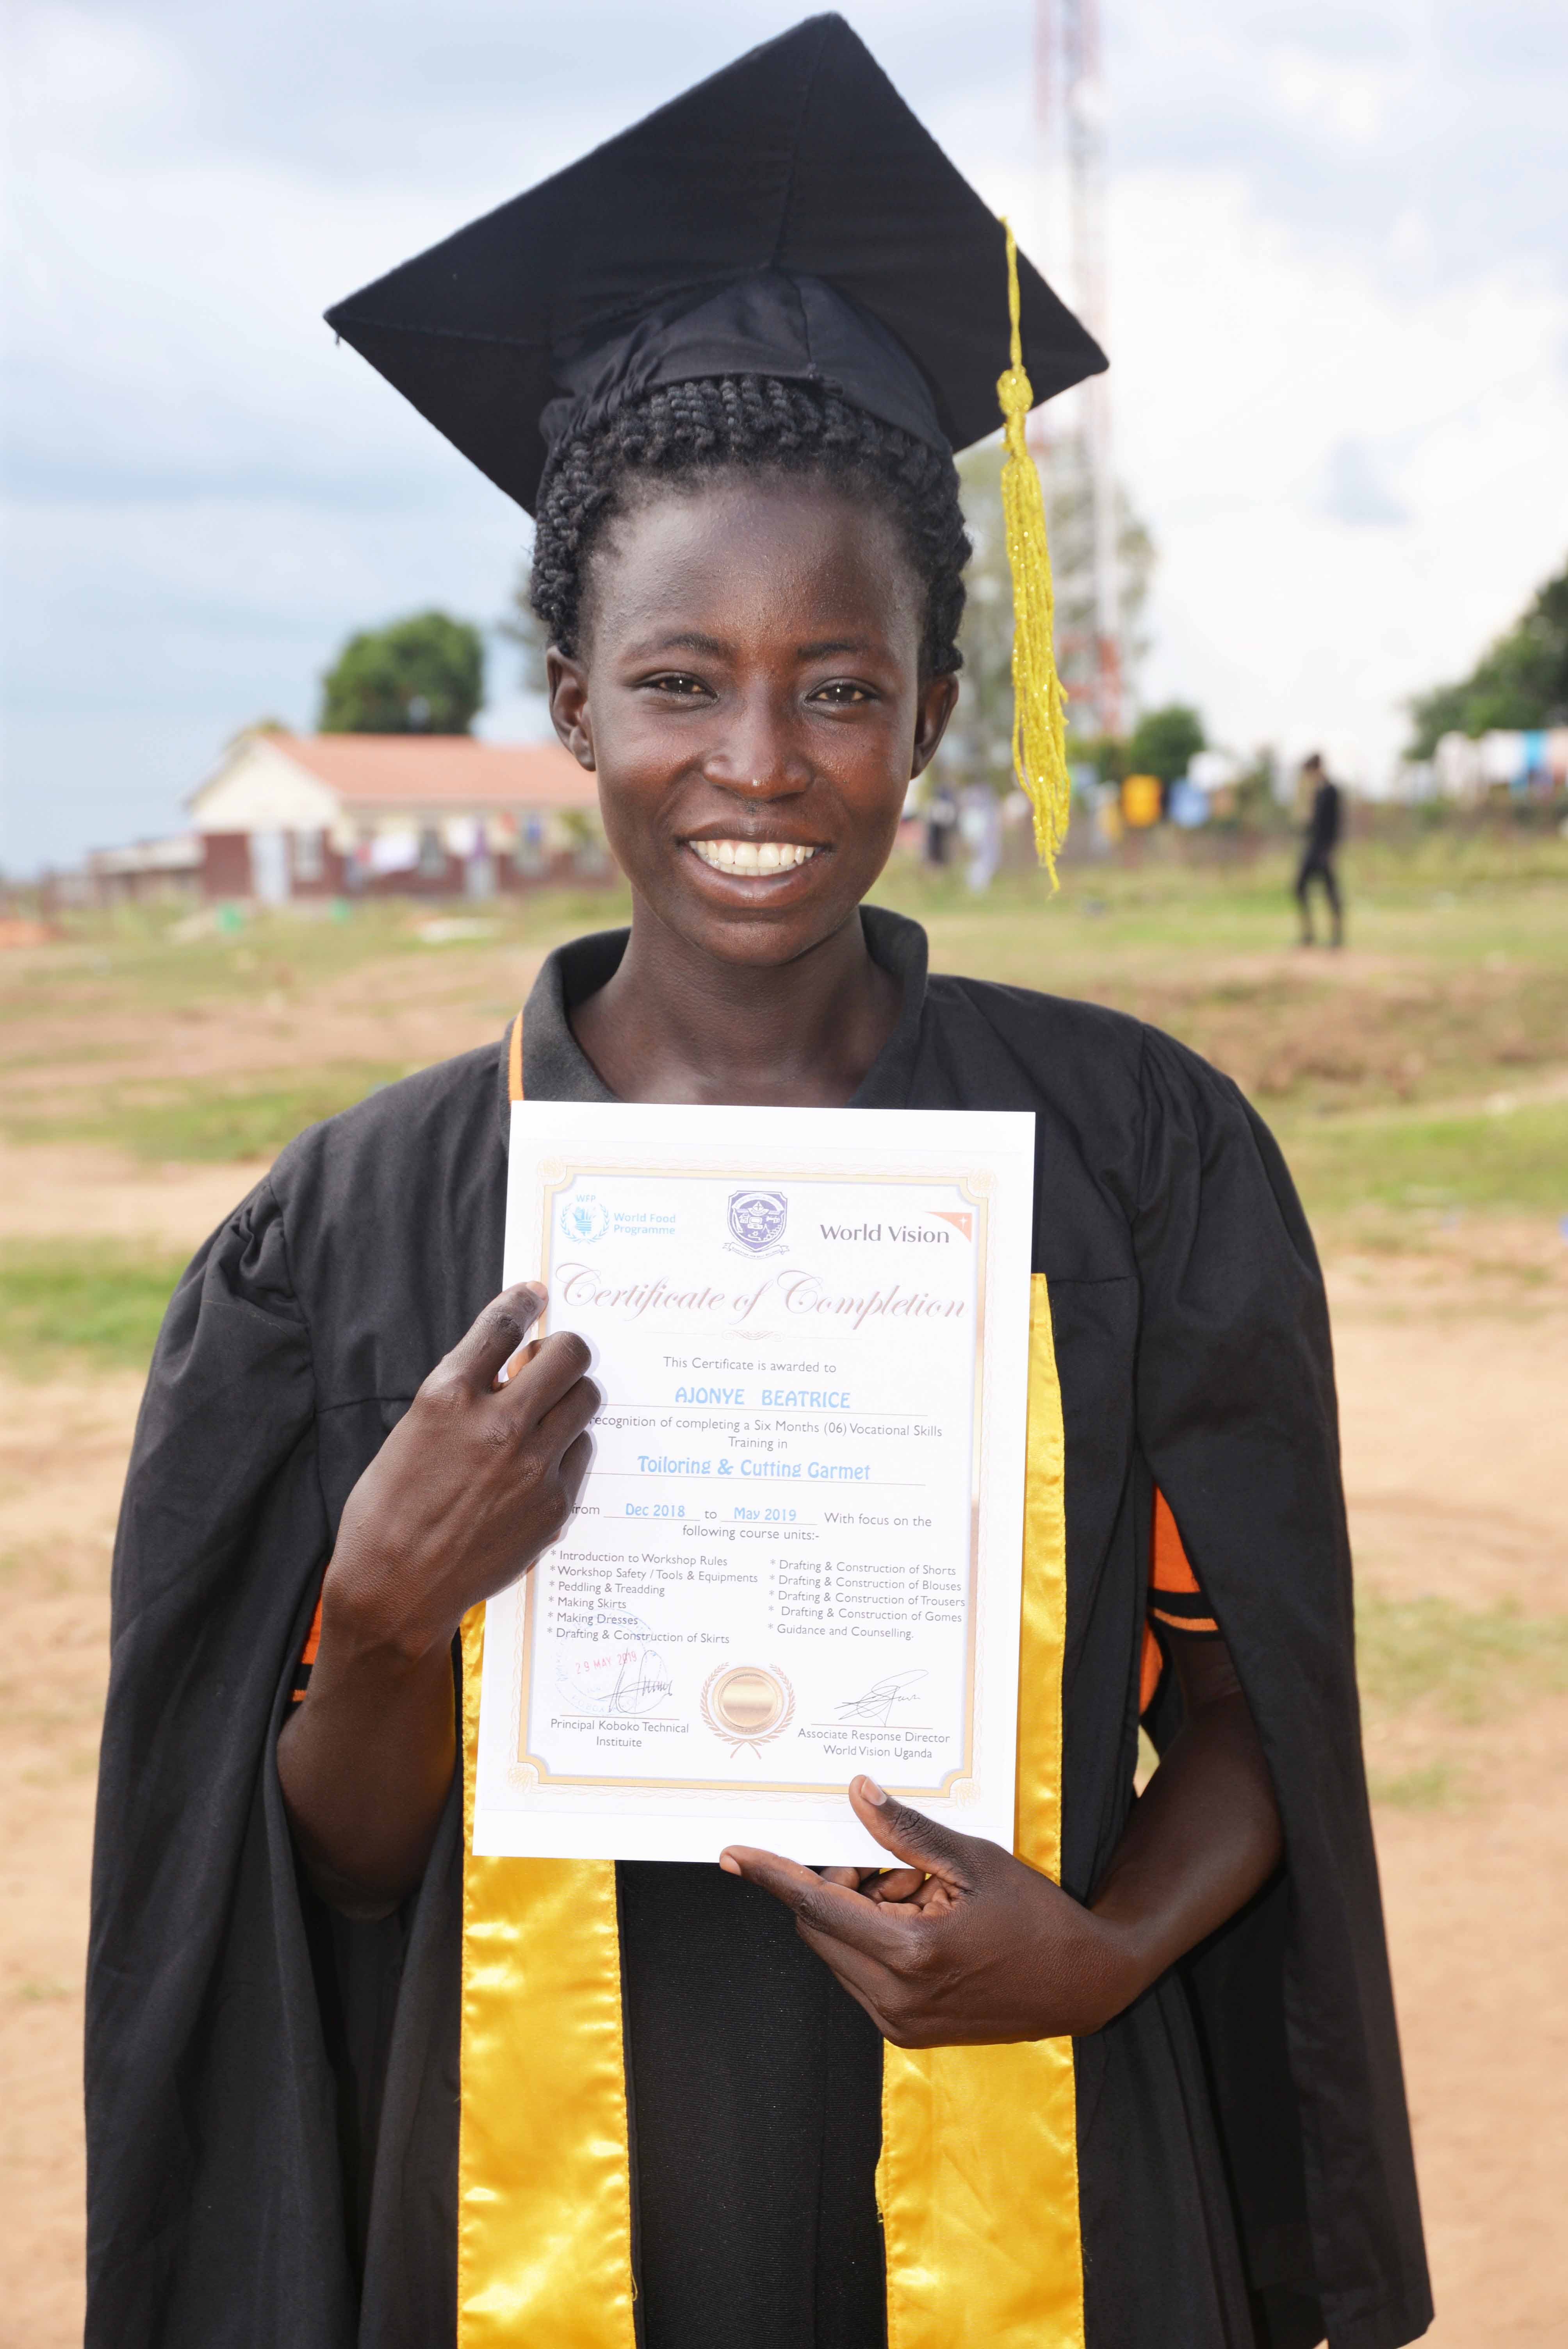 Beatrice Ajonje, 26, is now optimistic about her future after attaining tailoring skills copy